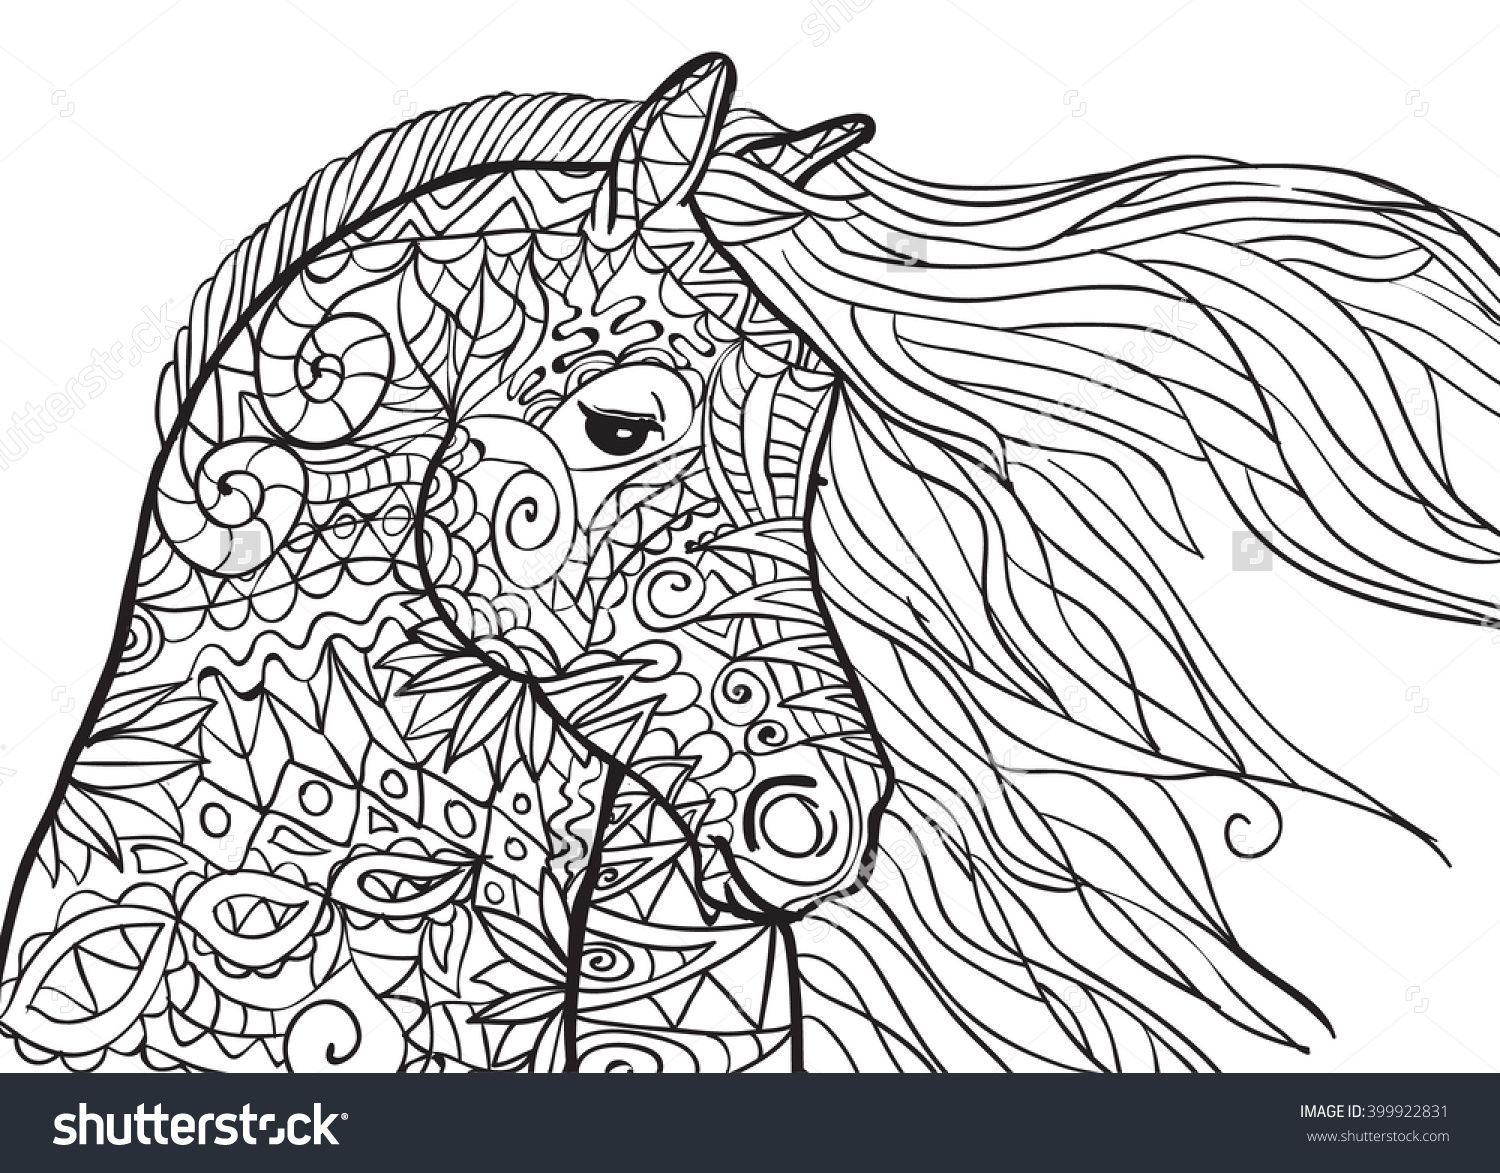 Hand Drawn Coloring Pages With Horse's Head, Illustration